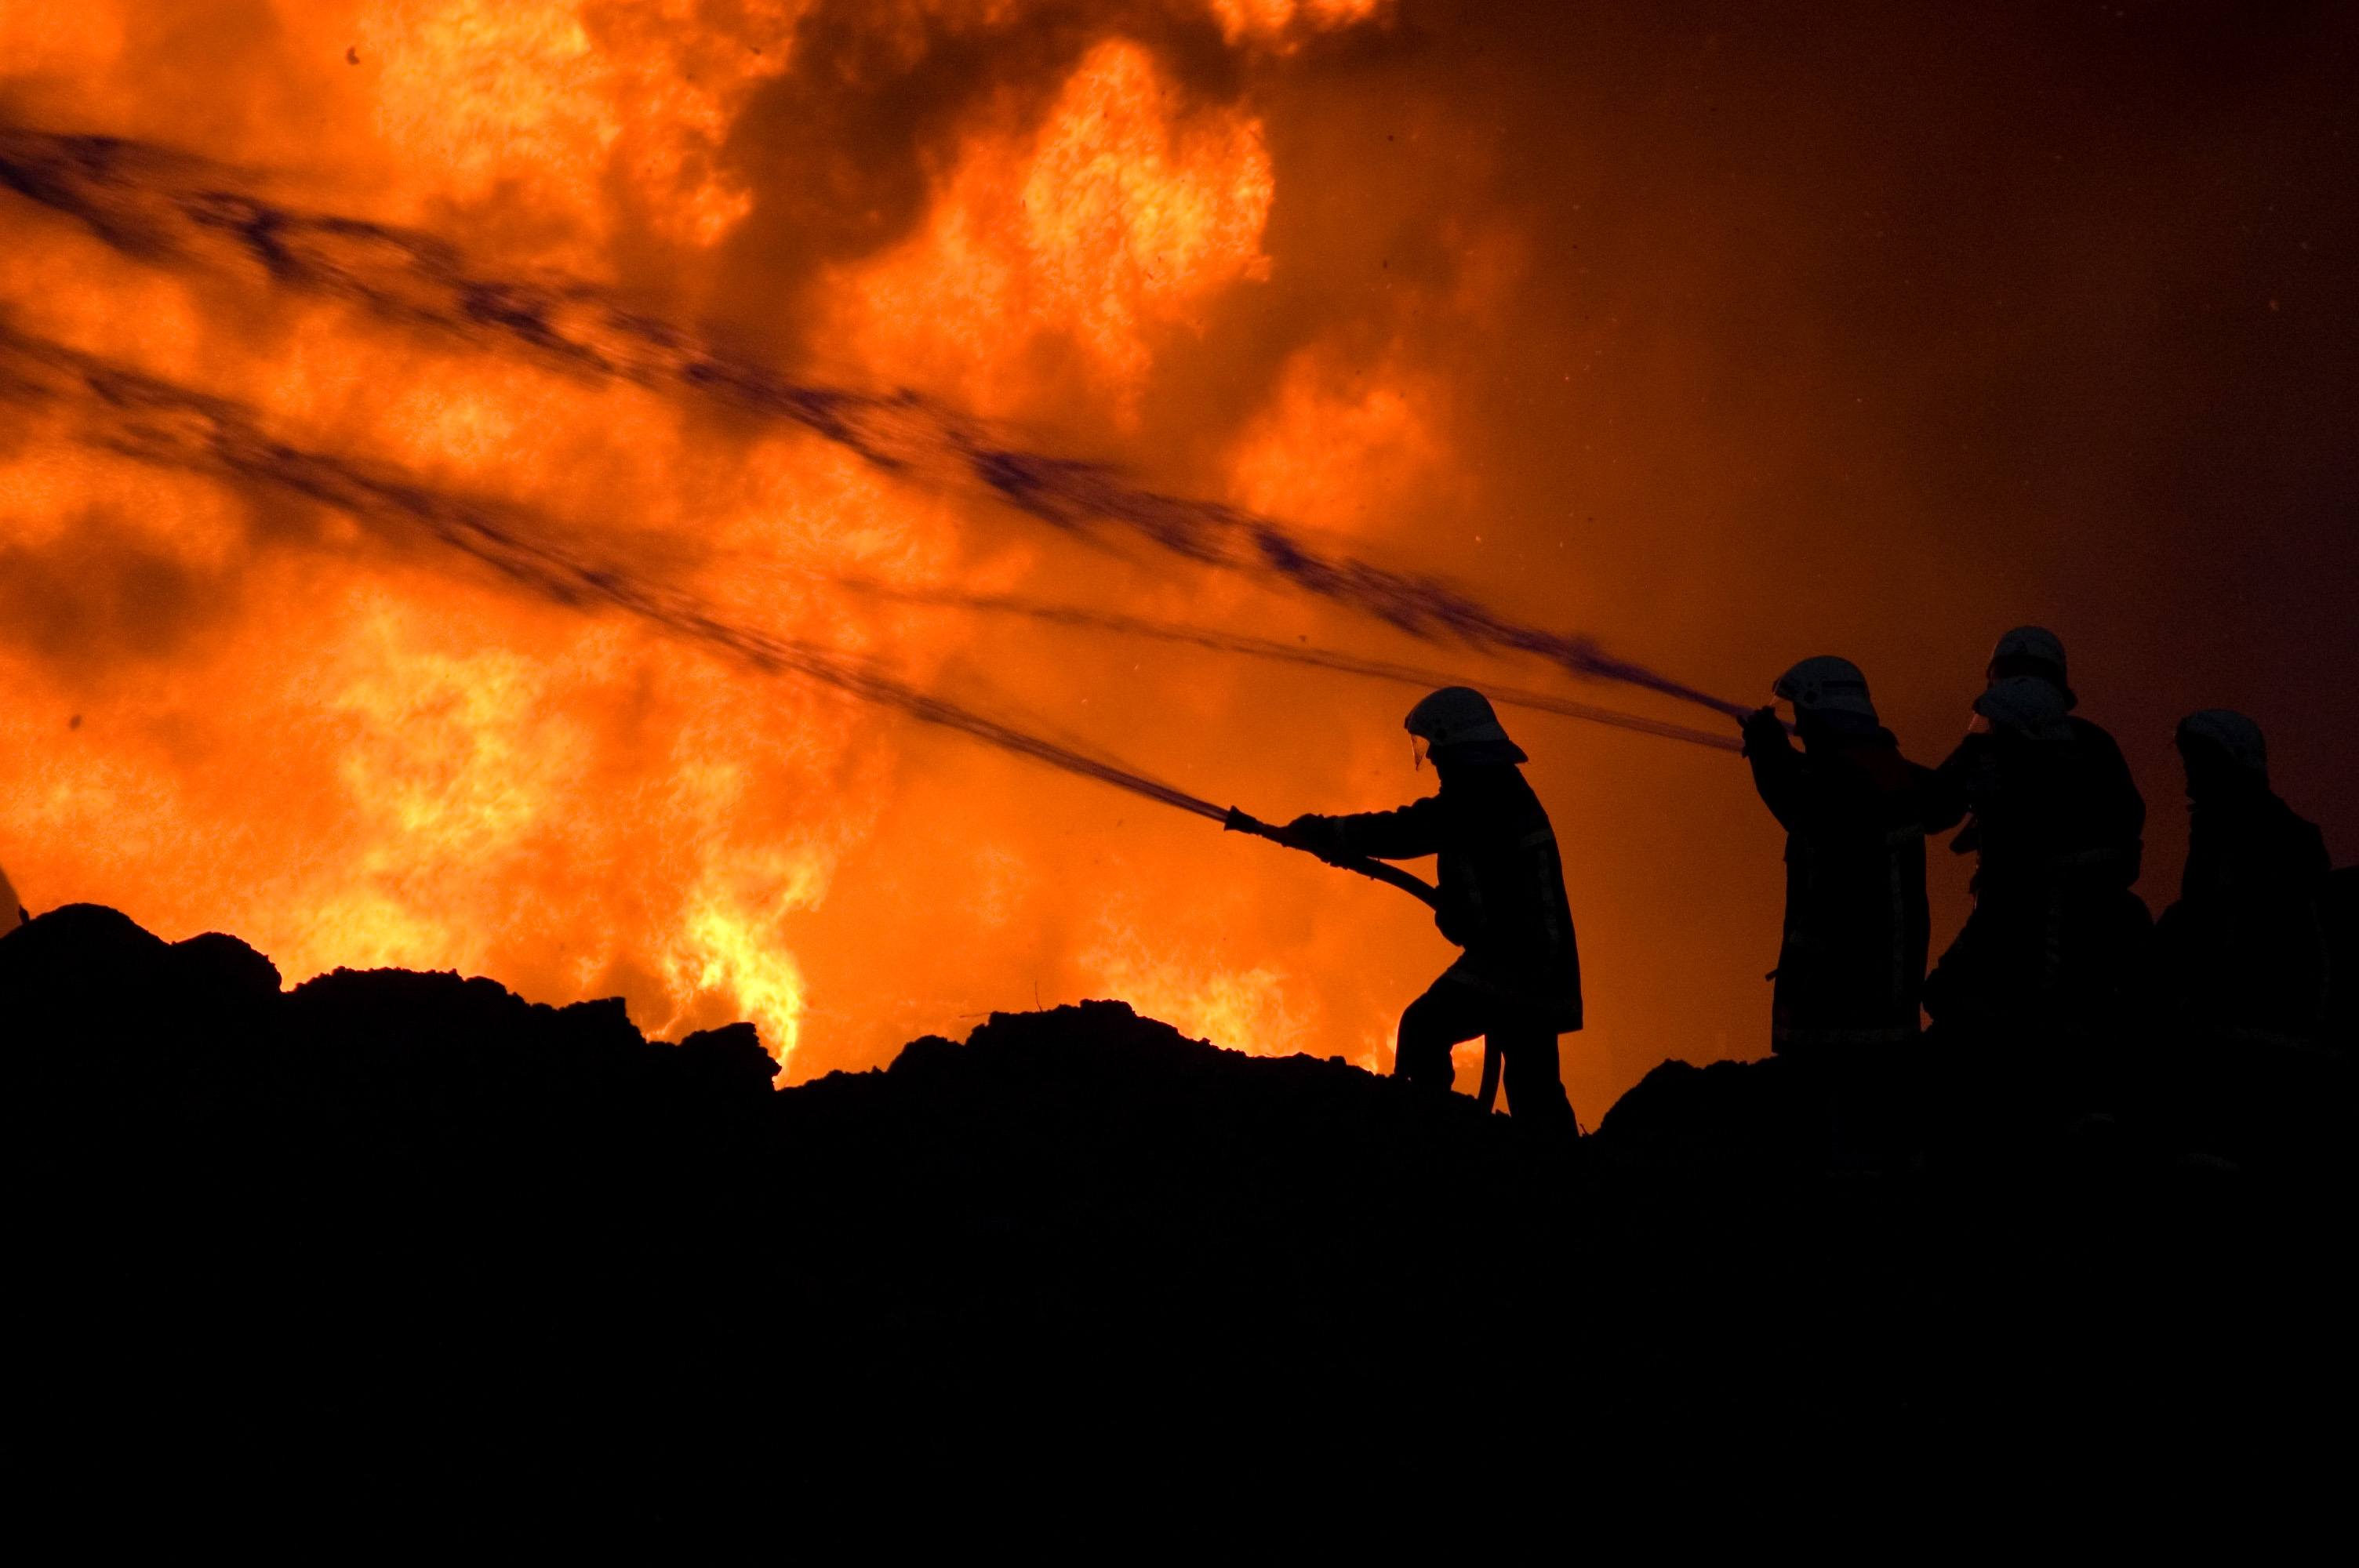 Firefighters at work fighting a fire